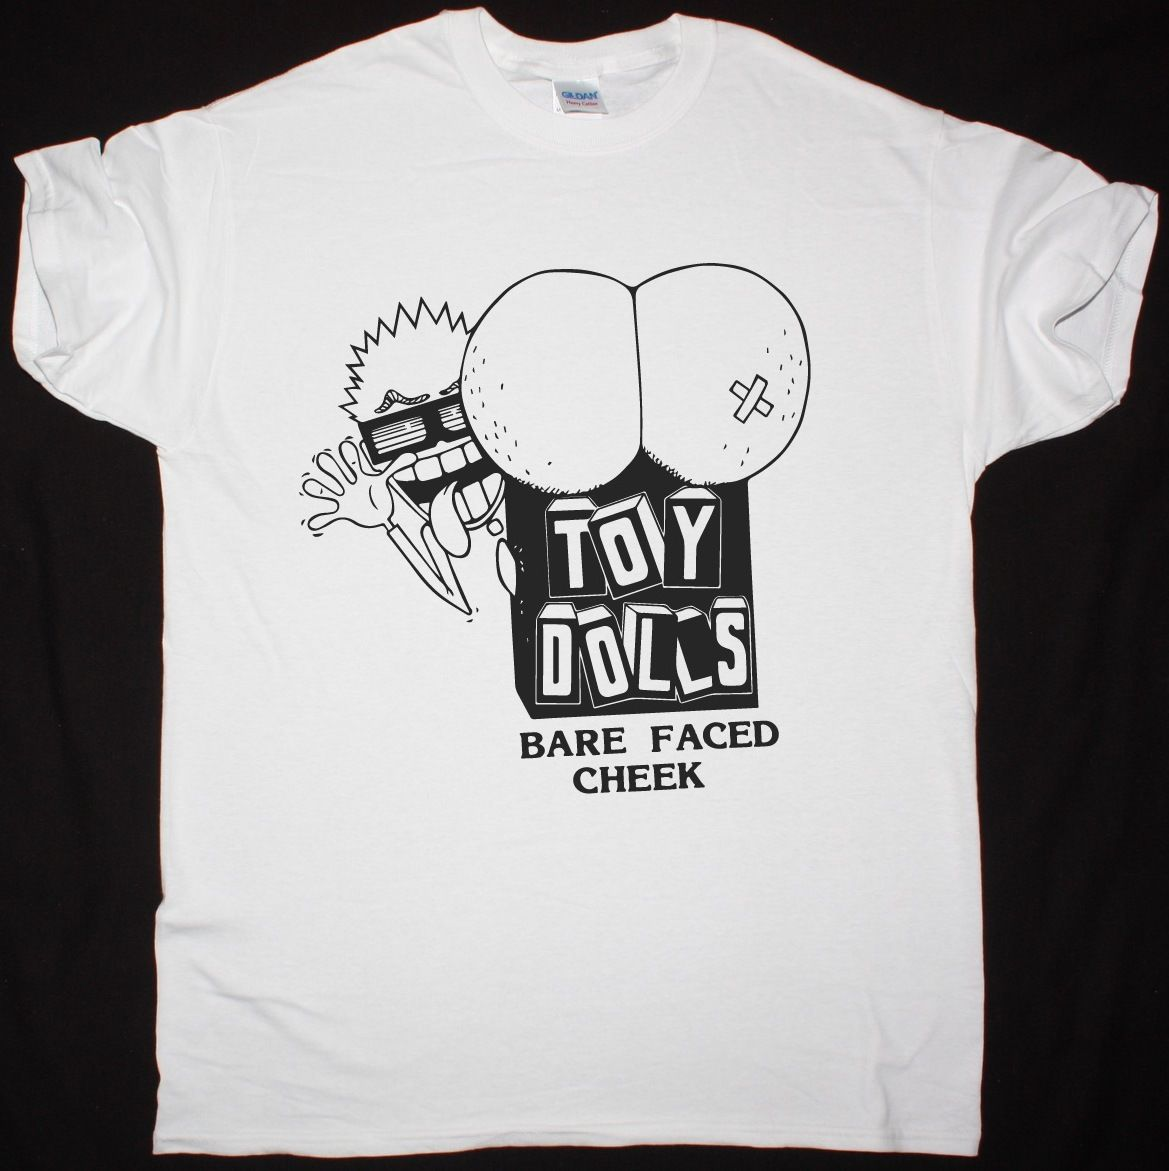 Design t shirt cheap uk - The Toy Dolls Bare Faced Cheek Punk Rock Uk Subs The Adicts New White T